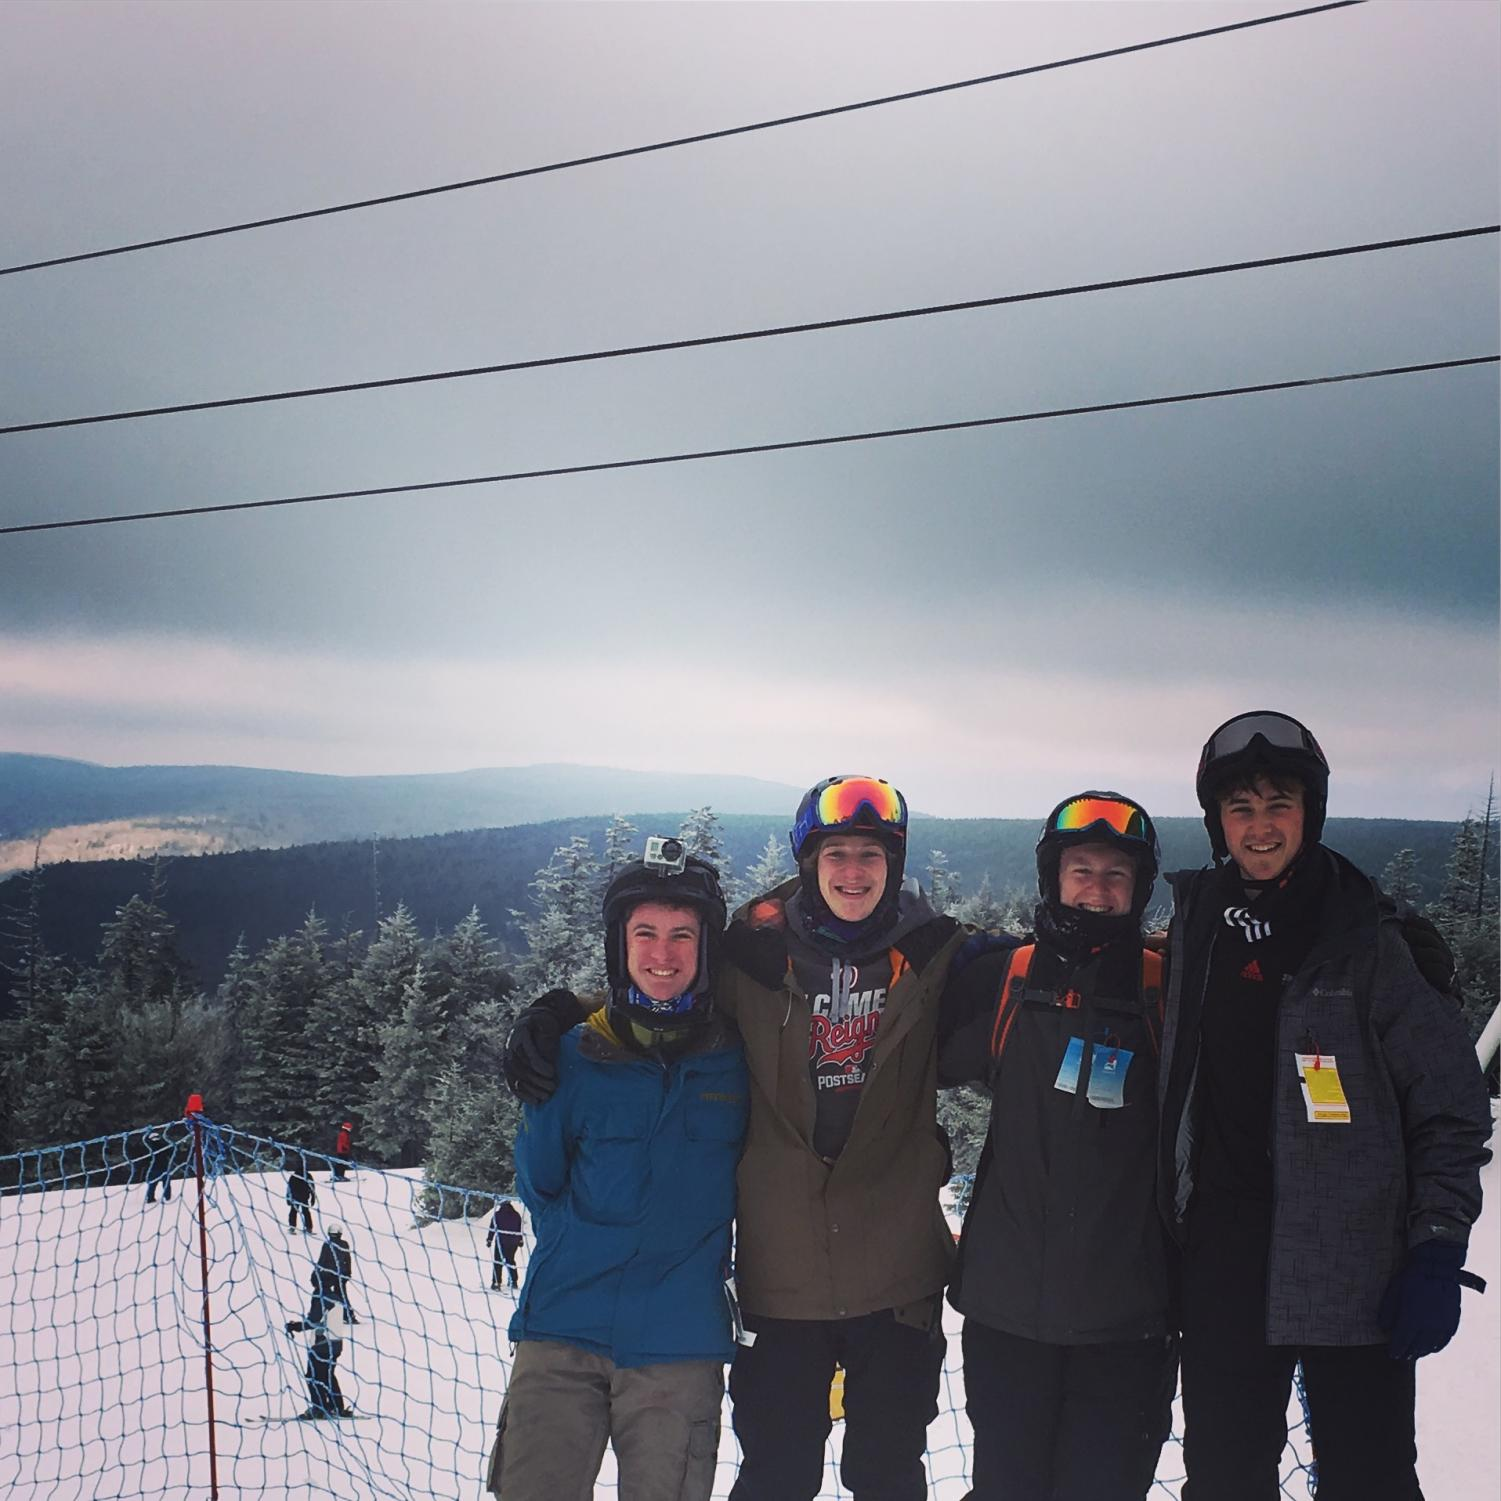 Seniors+Kyle+Gallagher%2C+Connor+Pennell%2C+Zack+Carter+and+Dylan+Lee+enjoy+their+annual+winter+break+skiing+trip+at+Snowshoe+Mountain+in+West+Virginia.